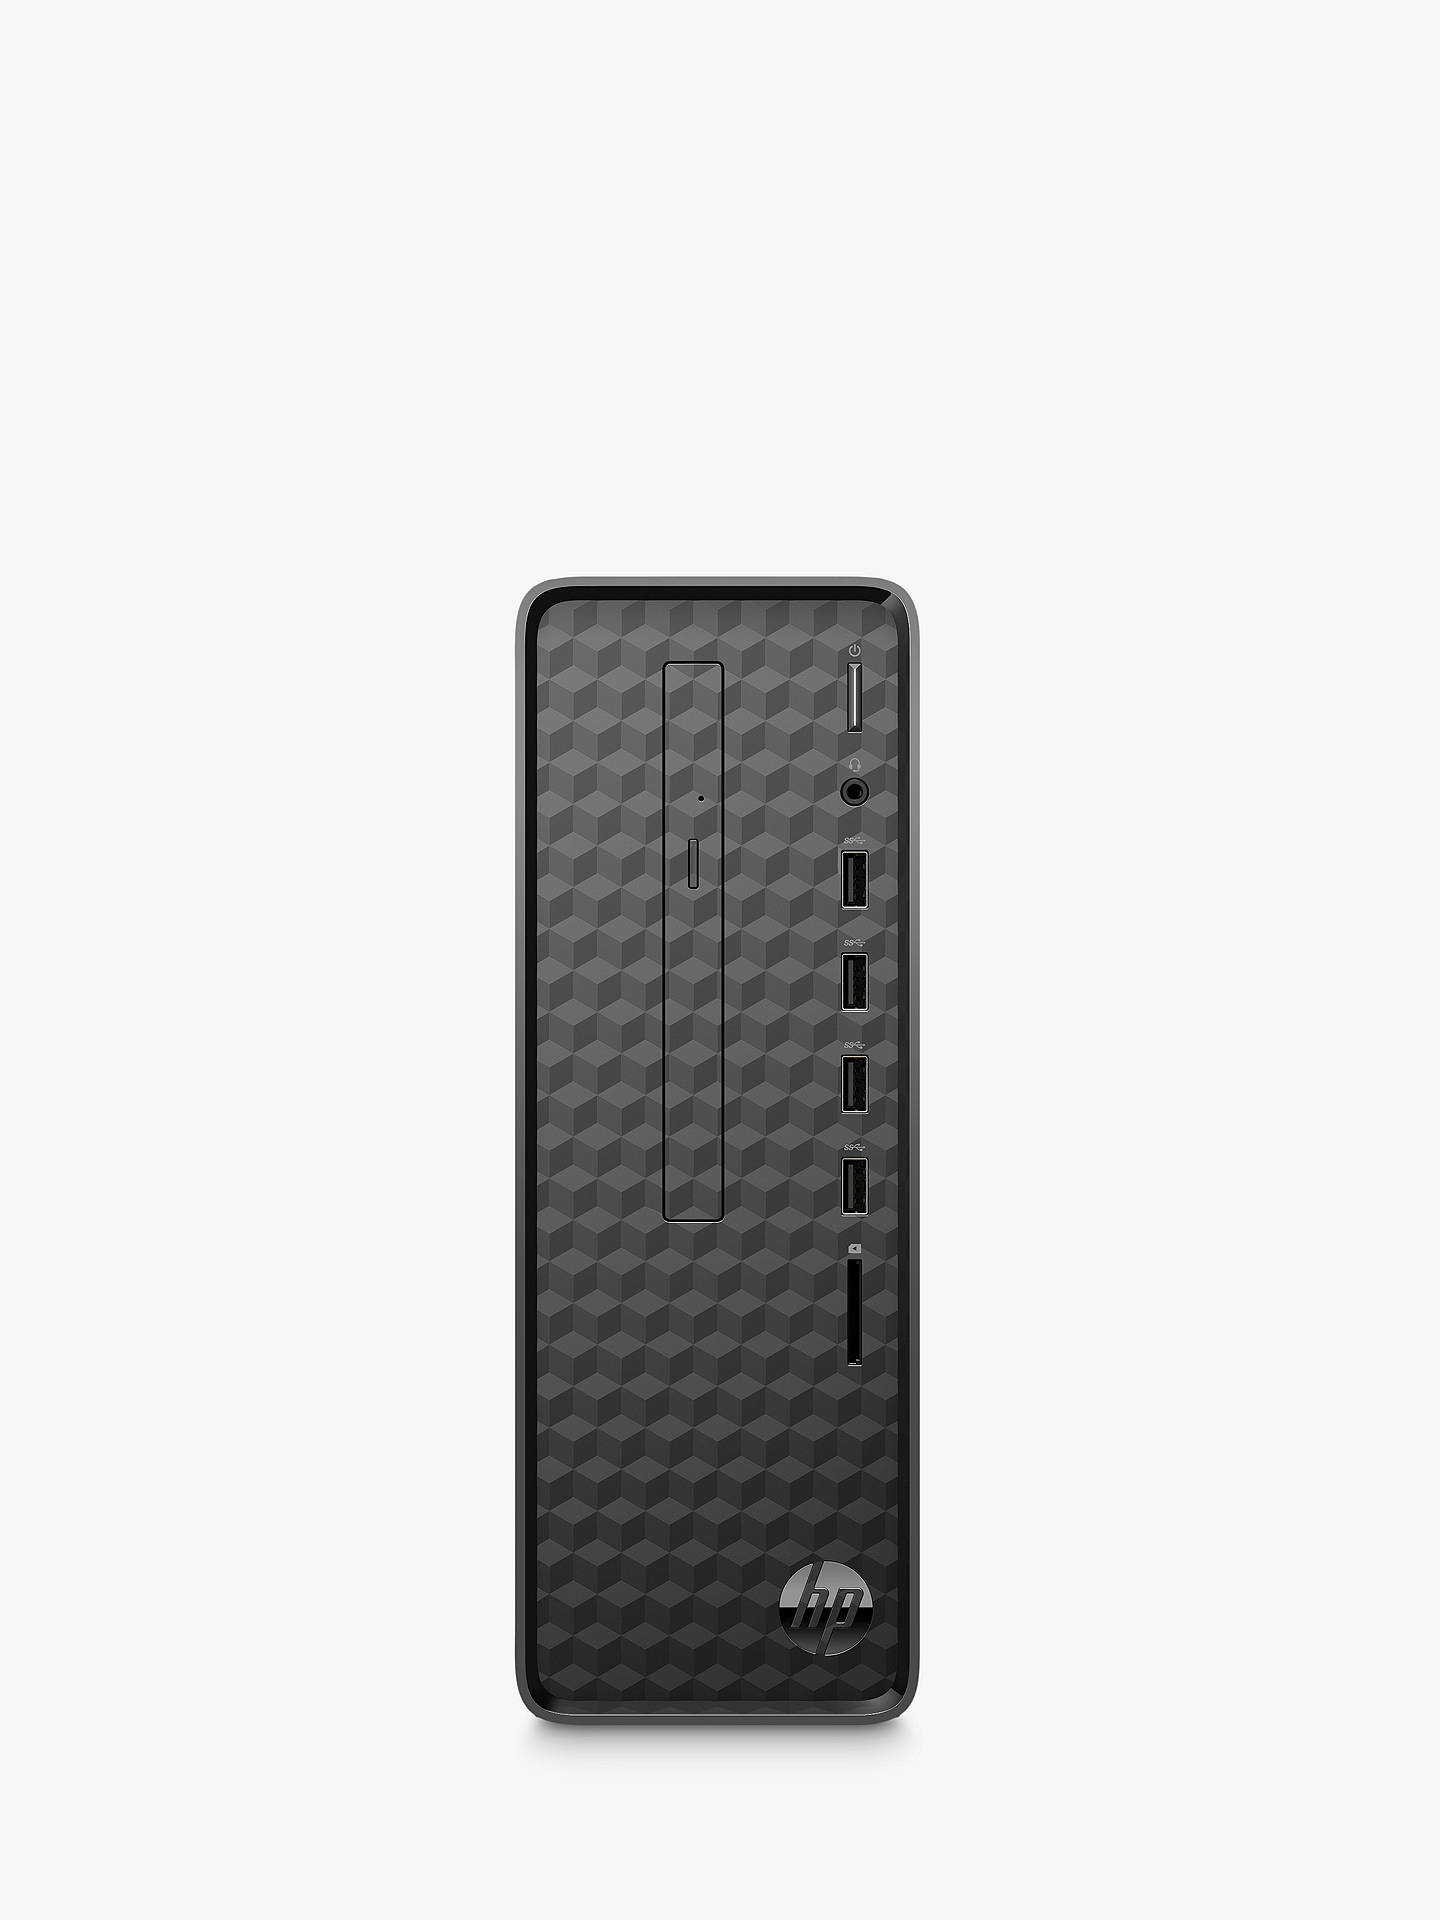 Buy HP Slim S01-aF0003na Desktop PC, Intel Celeron, 4GB RAM, 1TB HDD, Jet Black Online at johnlewis.com